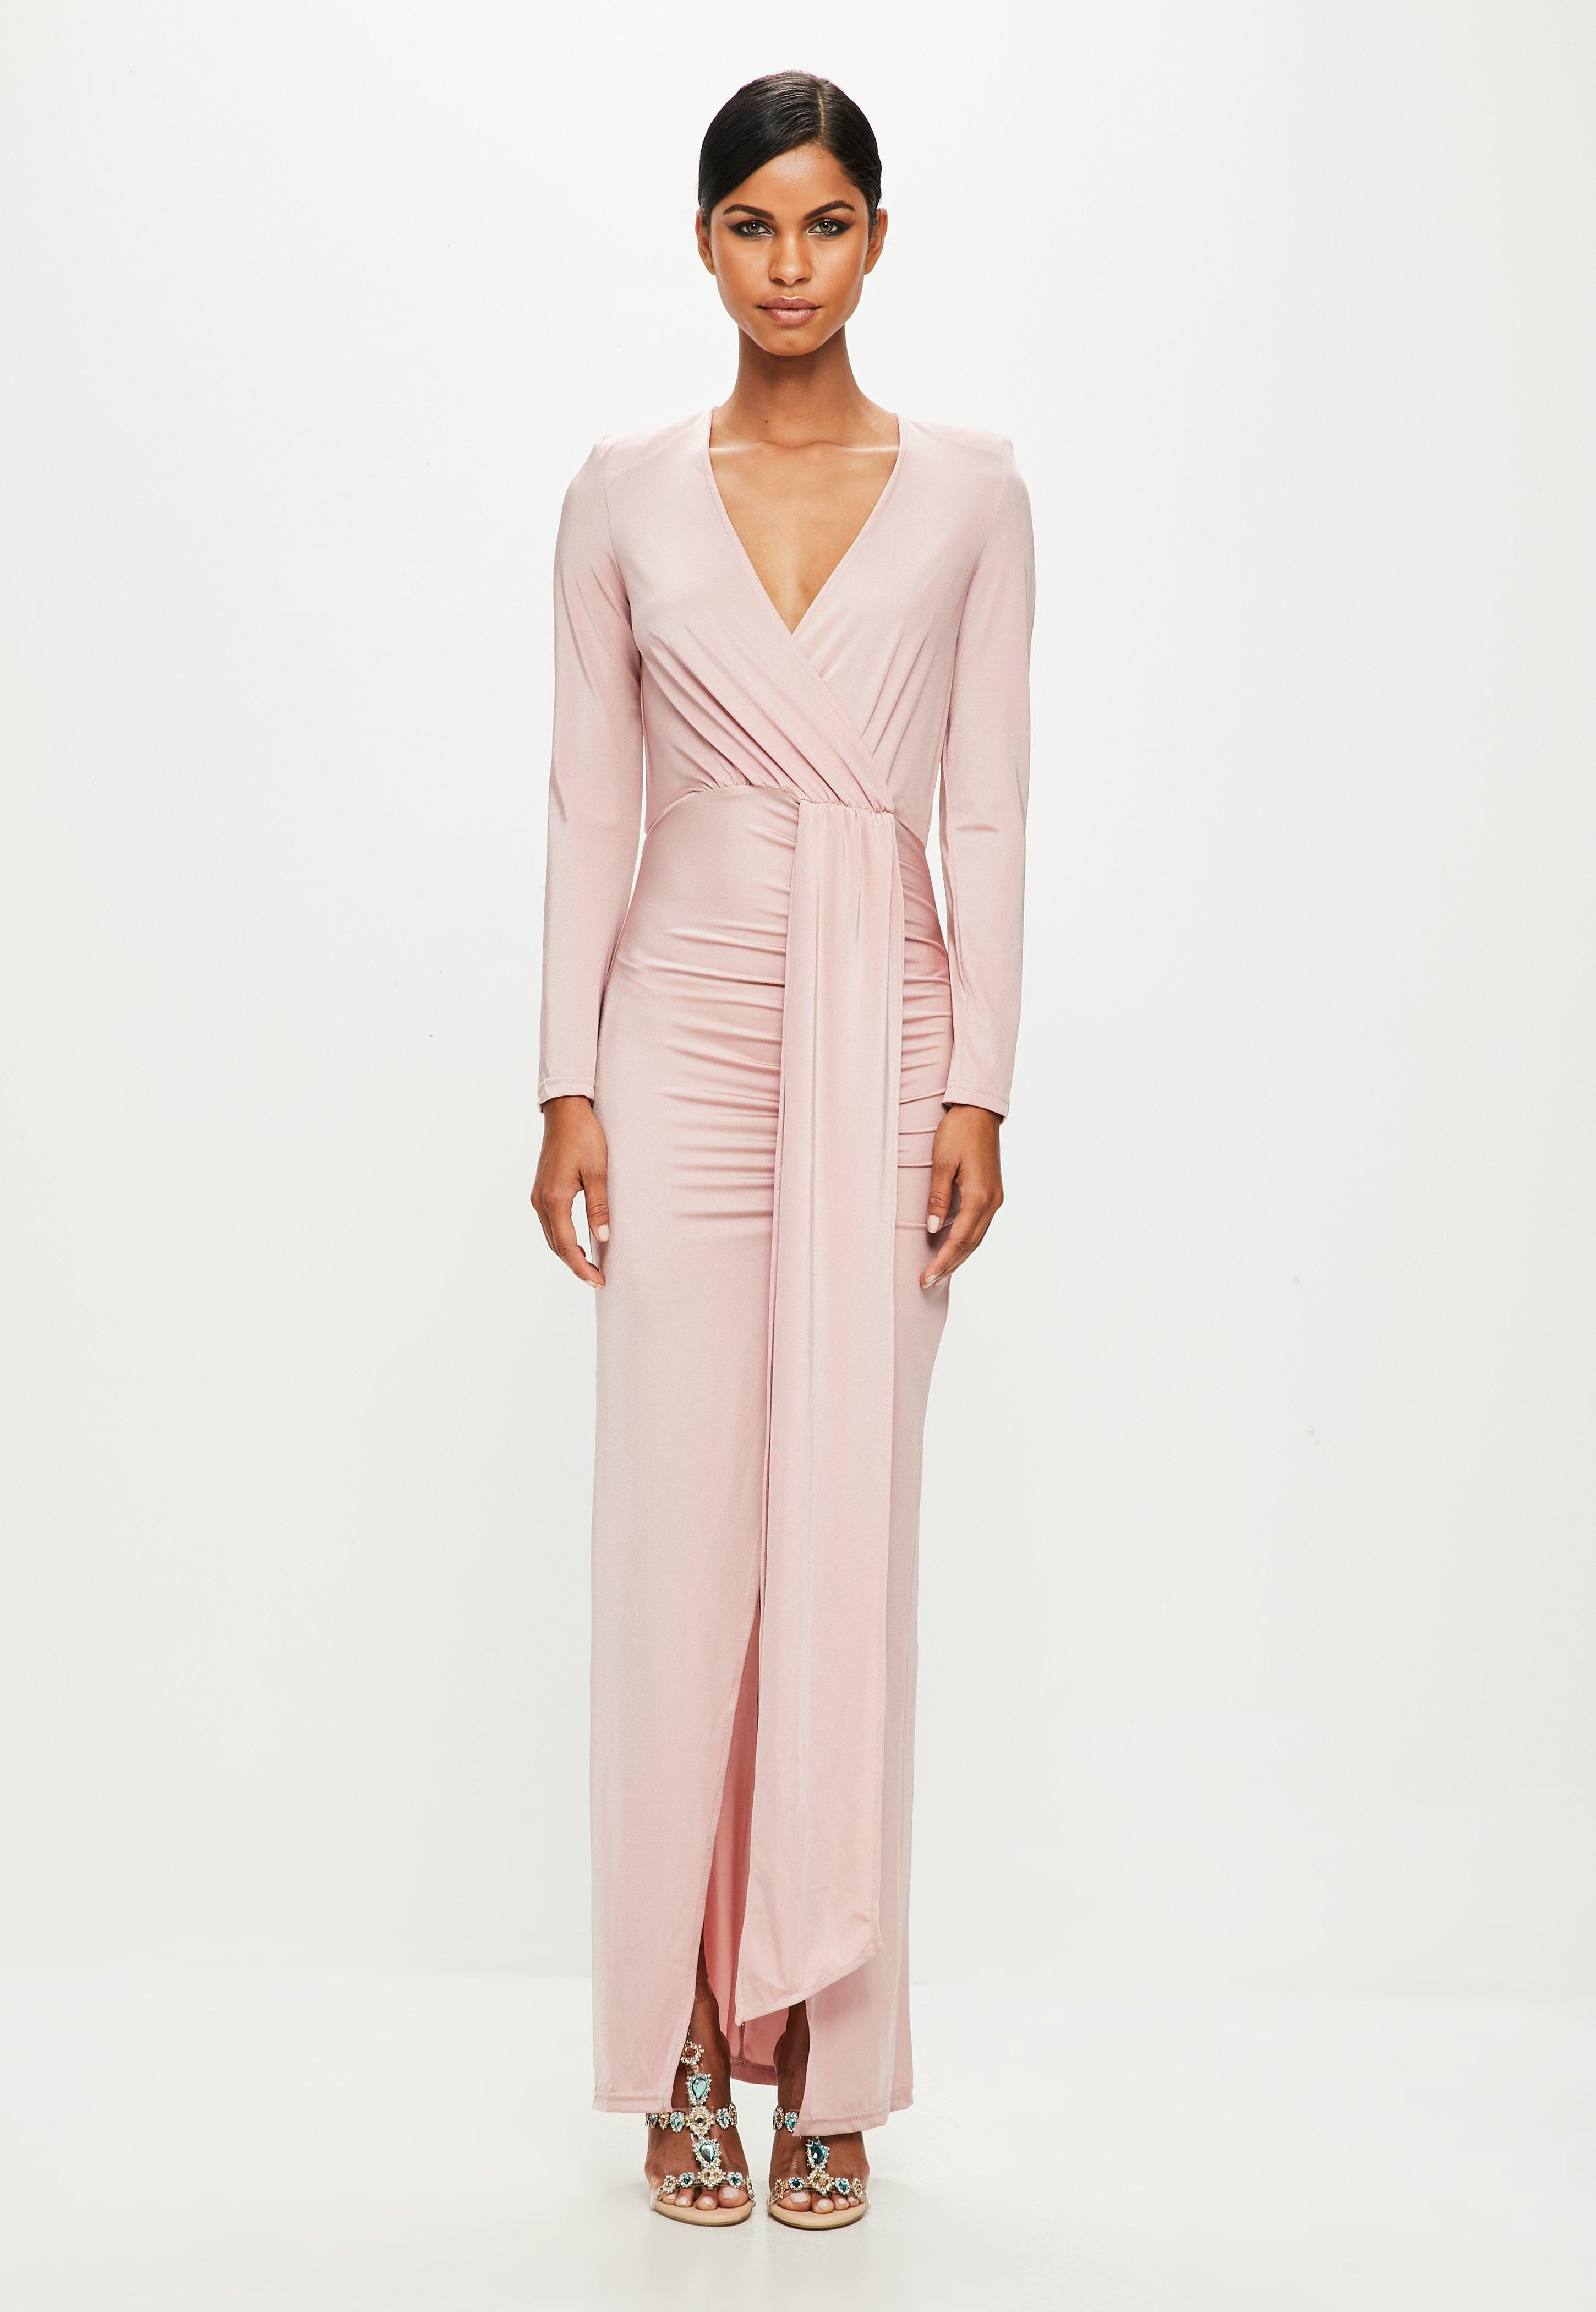 Maxi Dresses | Long & Flowy Dresses - Missguided Australia